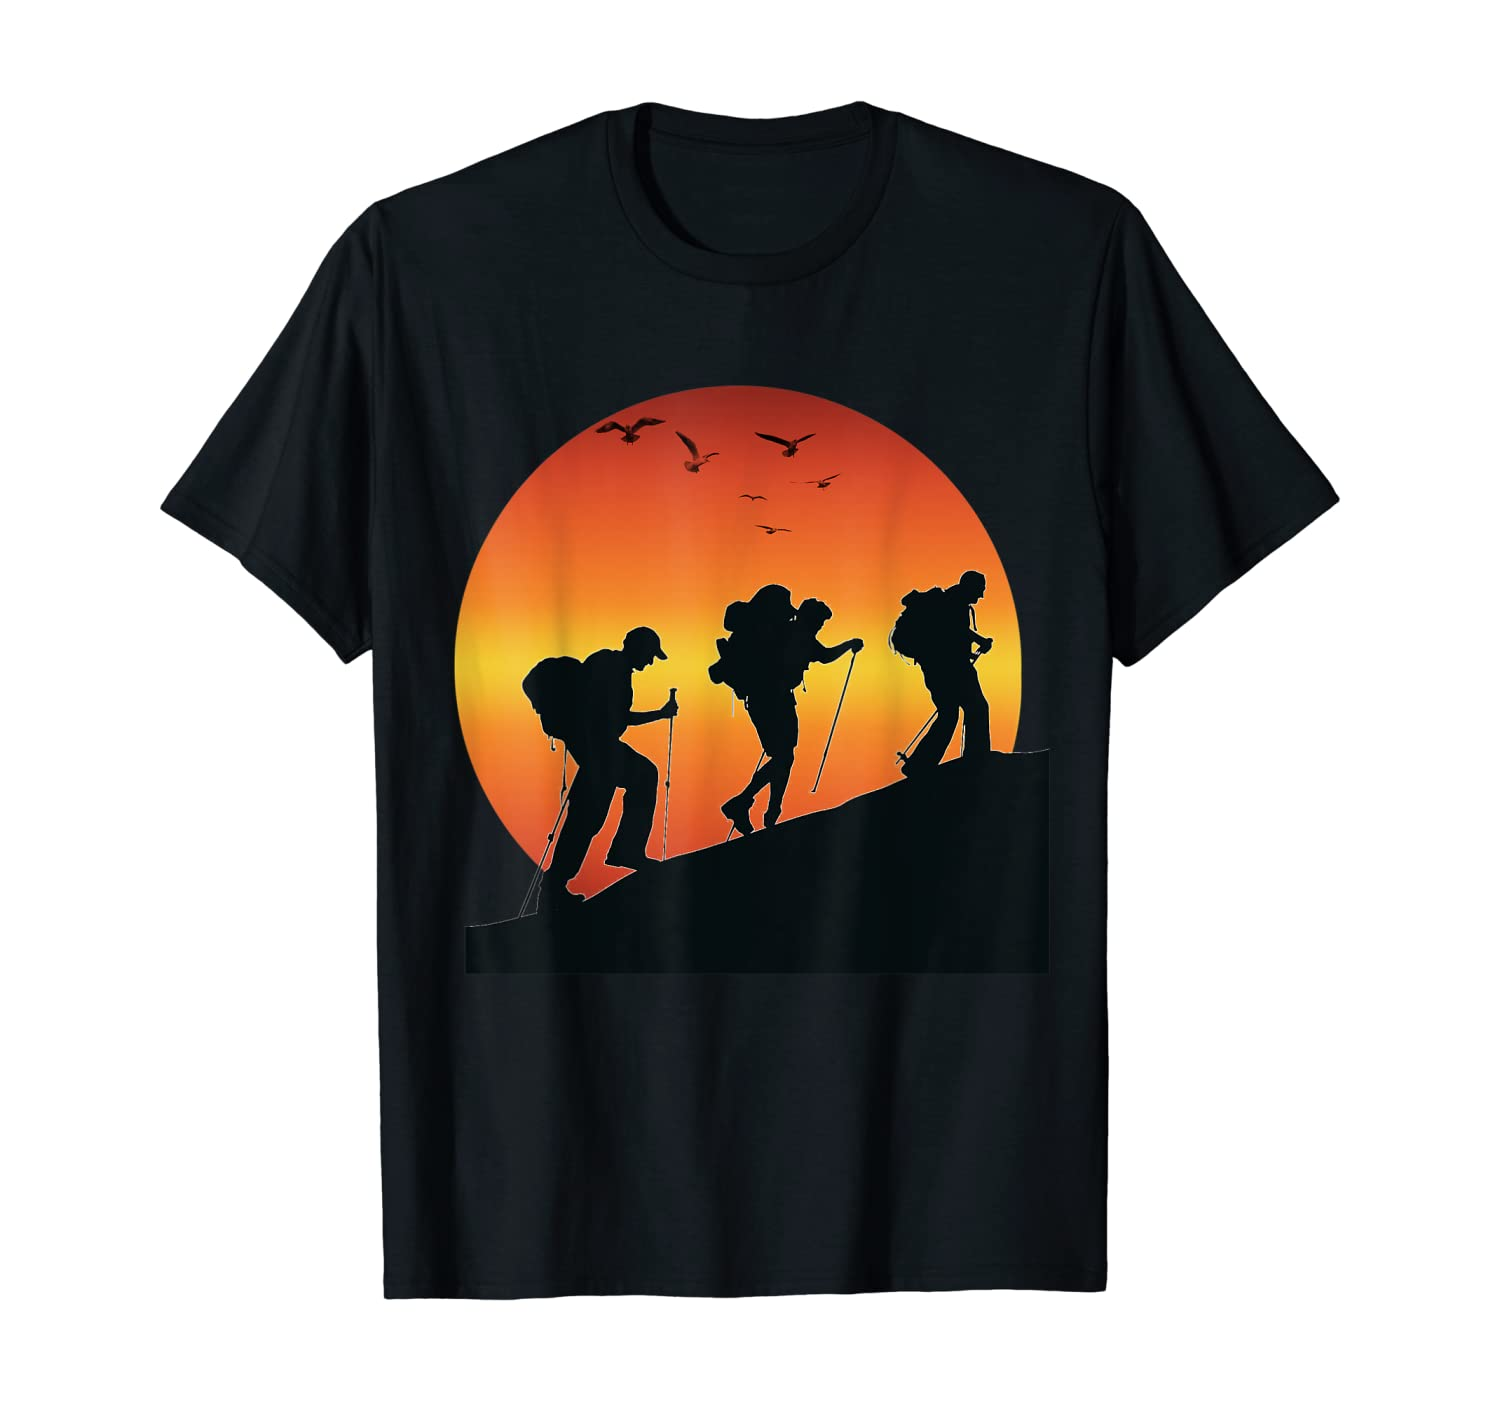 Hiking Climbing Mountain in Sunset with birds nature lovers T-Shirt